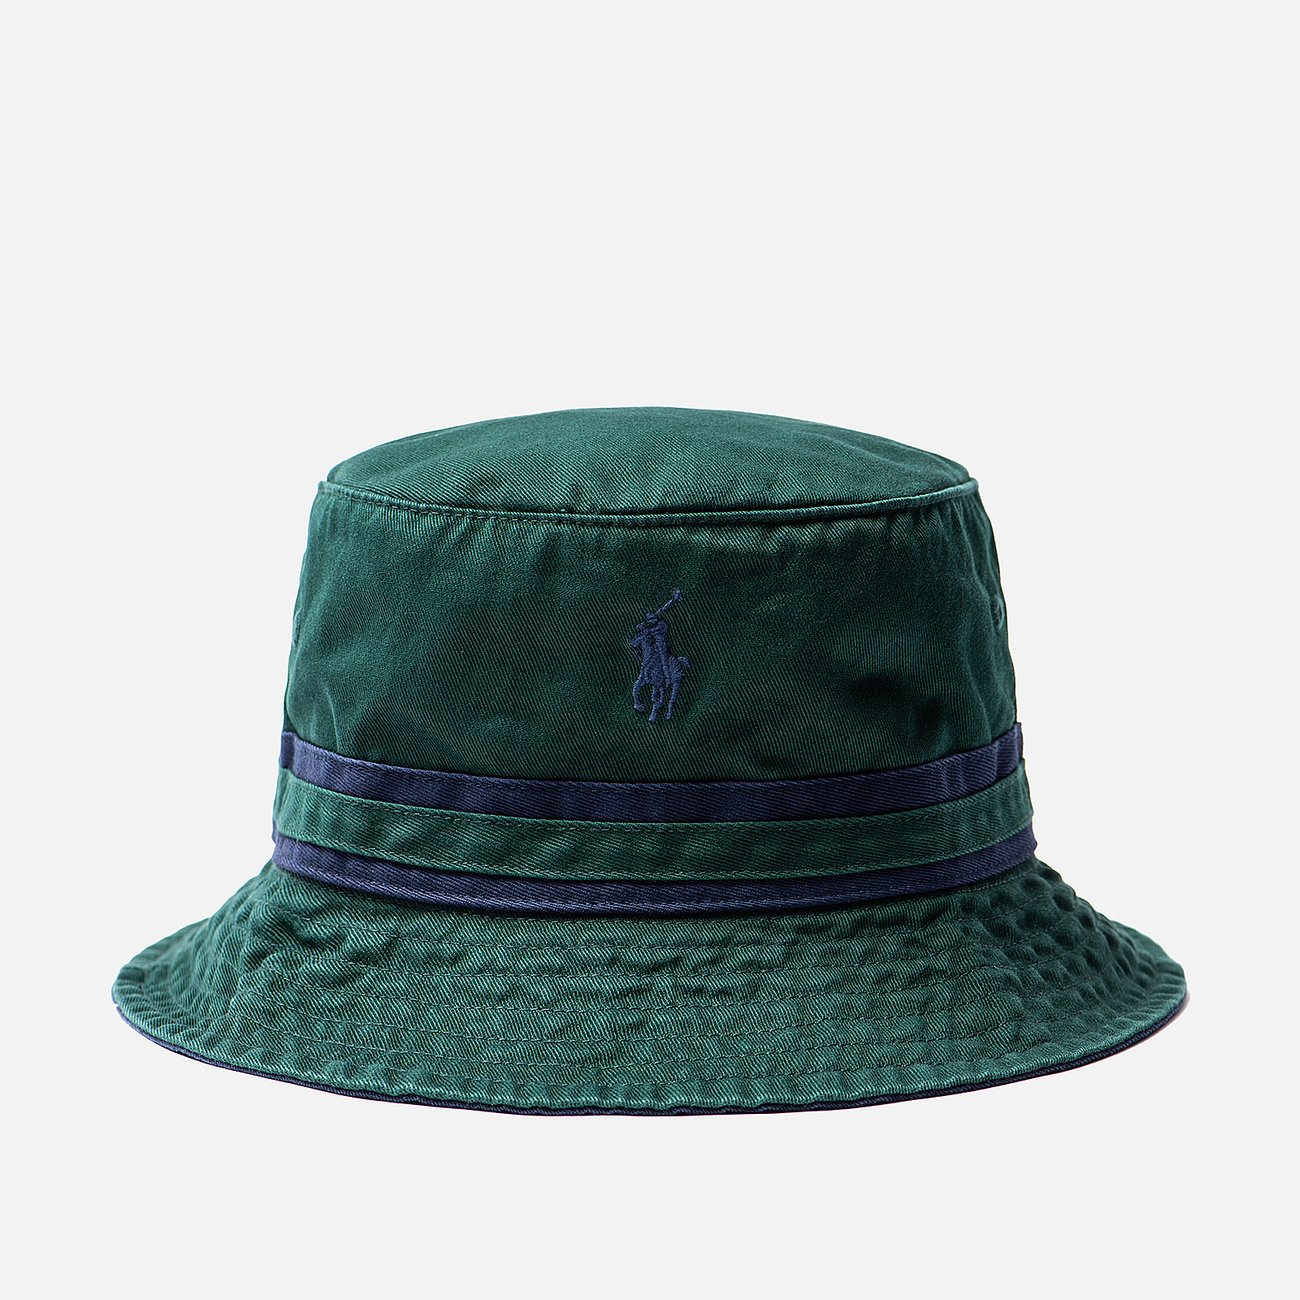 Панама Polo Ralph Lauren Signature Embroidered Pony College Green/Newport Navy